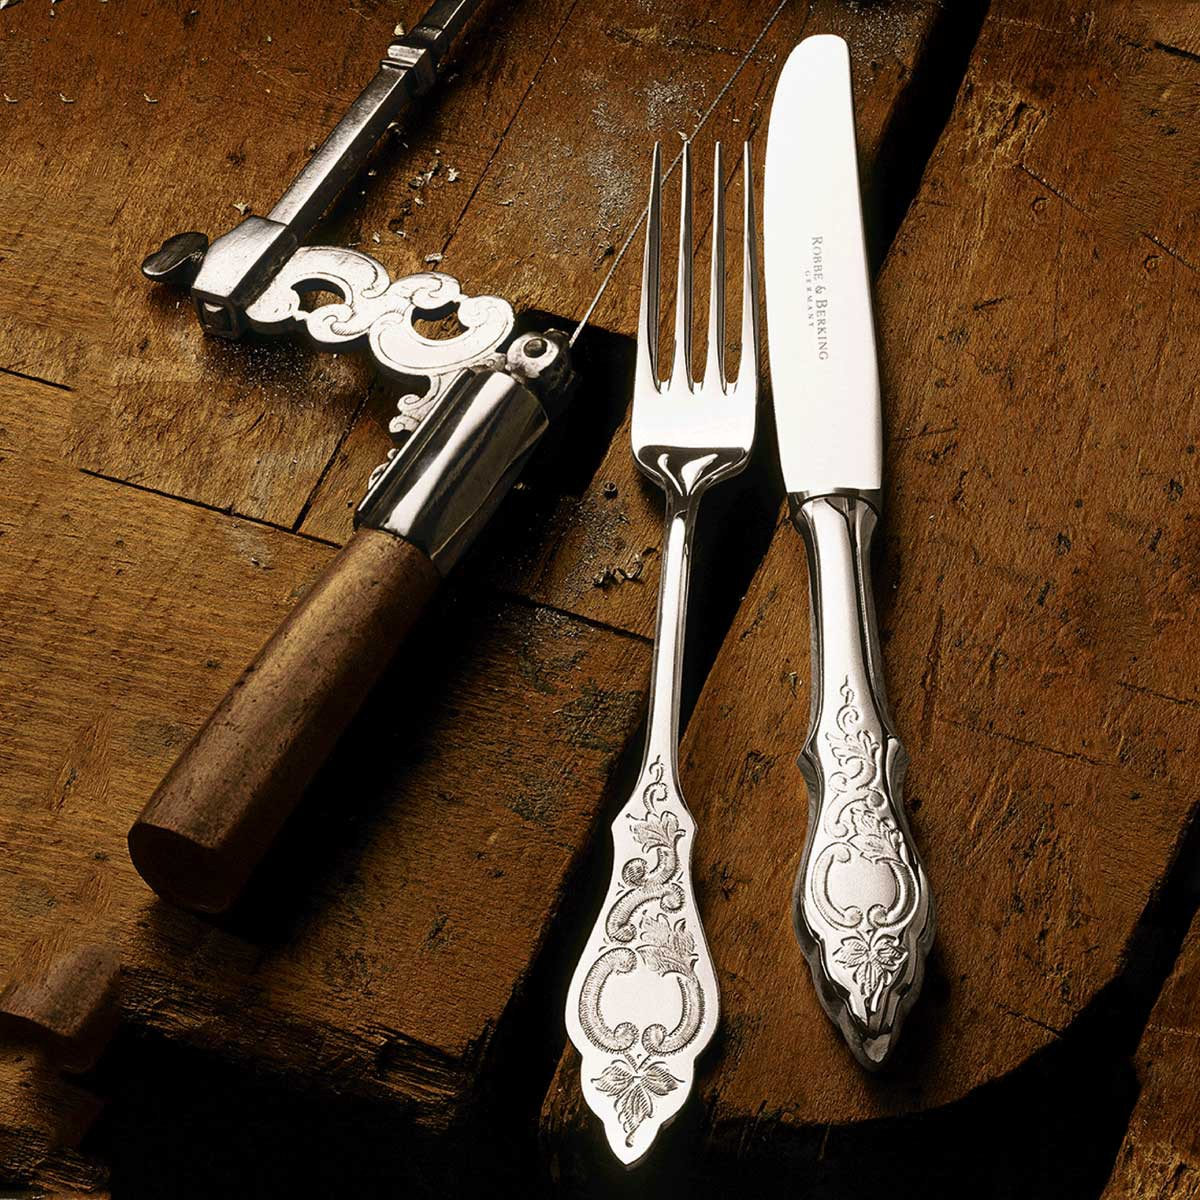 Black Friday Bettwäsche Robbe Berking Robbe Berking Art Deco Cutlery Sterling